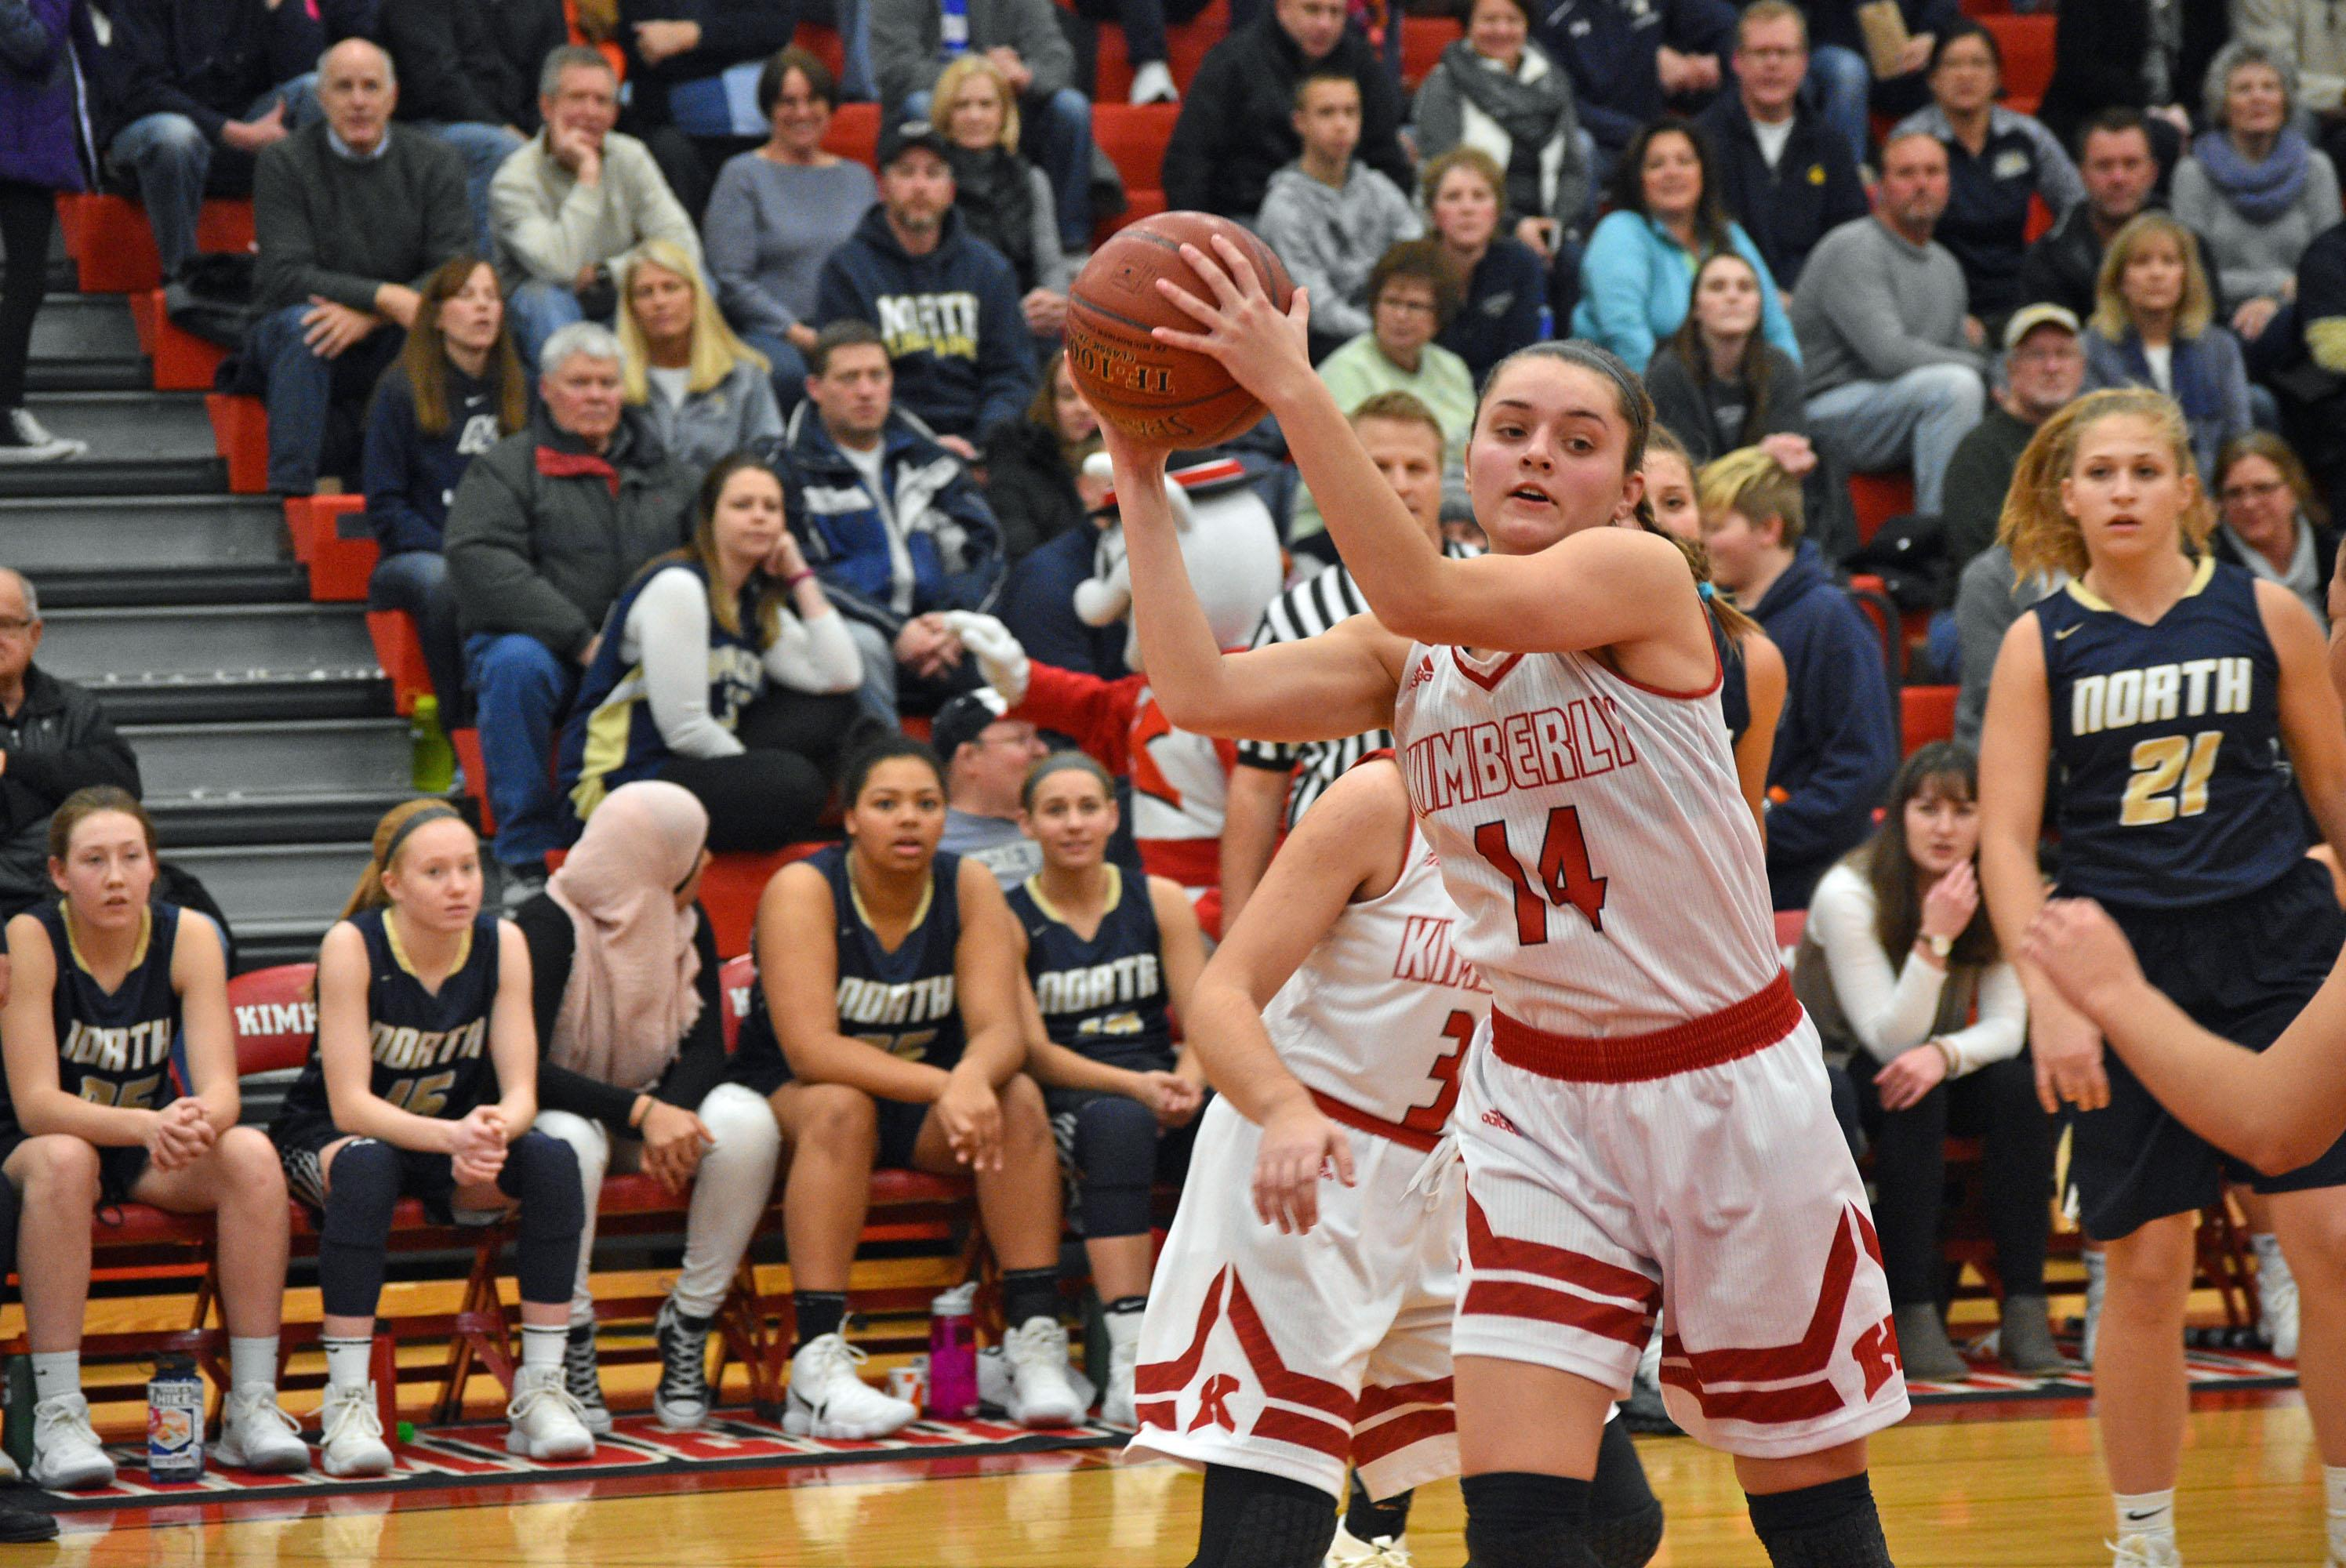 Appleton North defeated Kimberly, 55-48, in a girls basketball game Friday. (Doug Ritchay/WLUK)